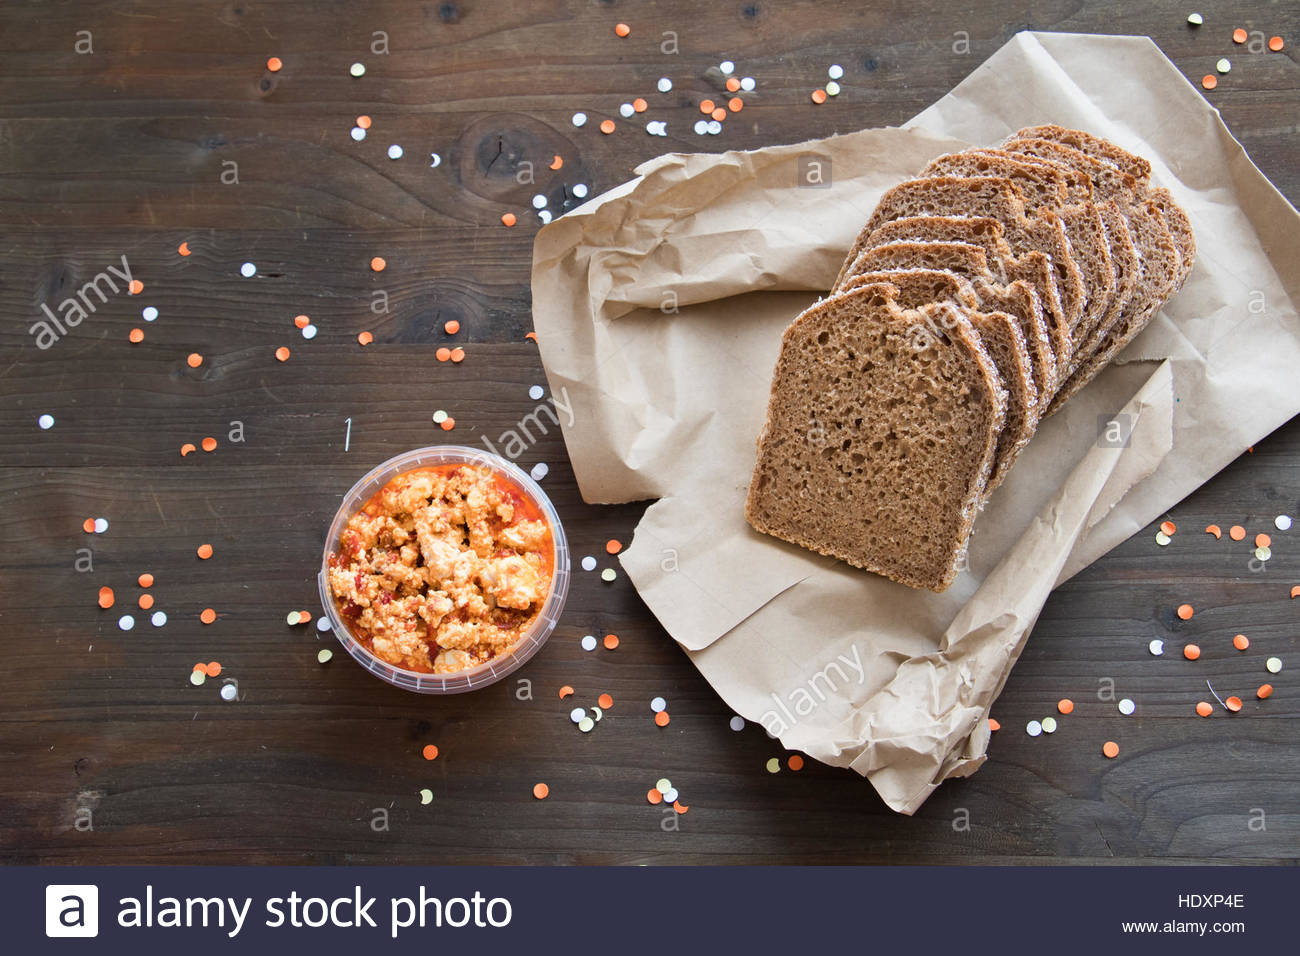 Organic food brown bag bread sliced bread bread on table bread and cheese loaf bread close up slices Wholemeal Bread - Stock Image